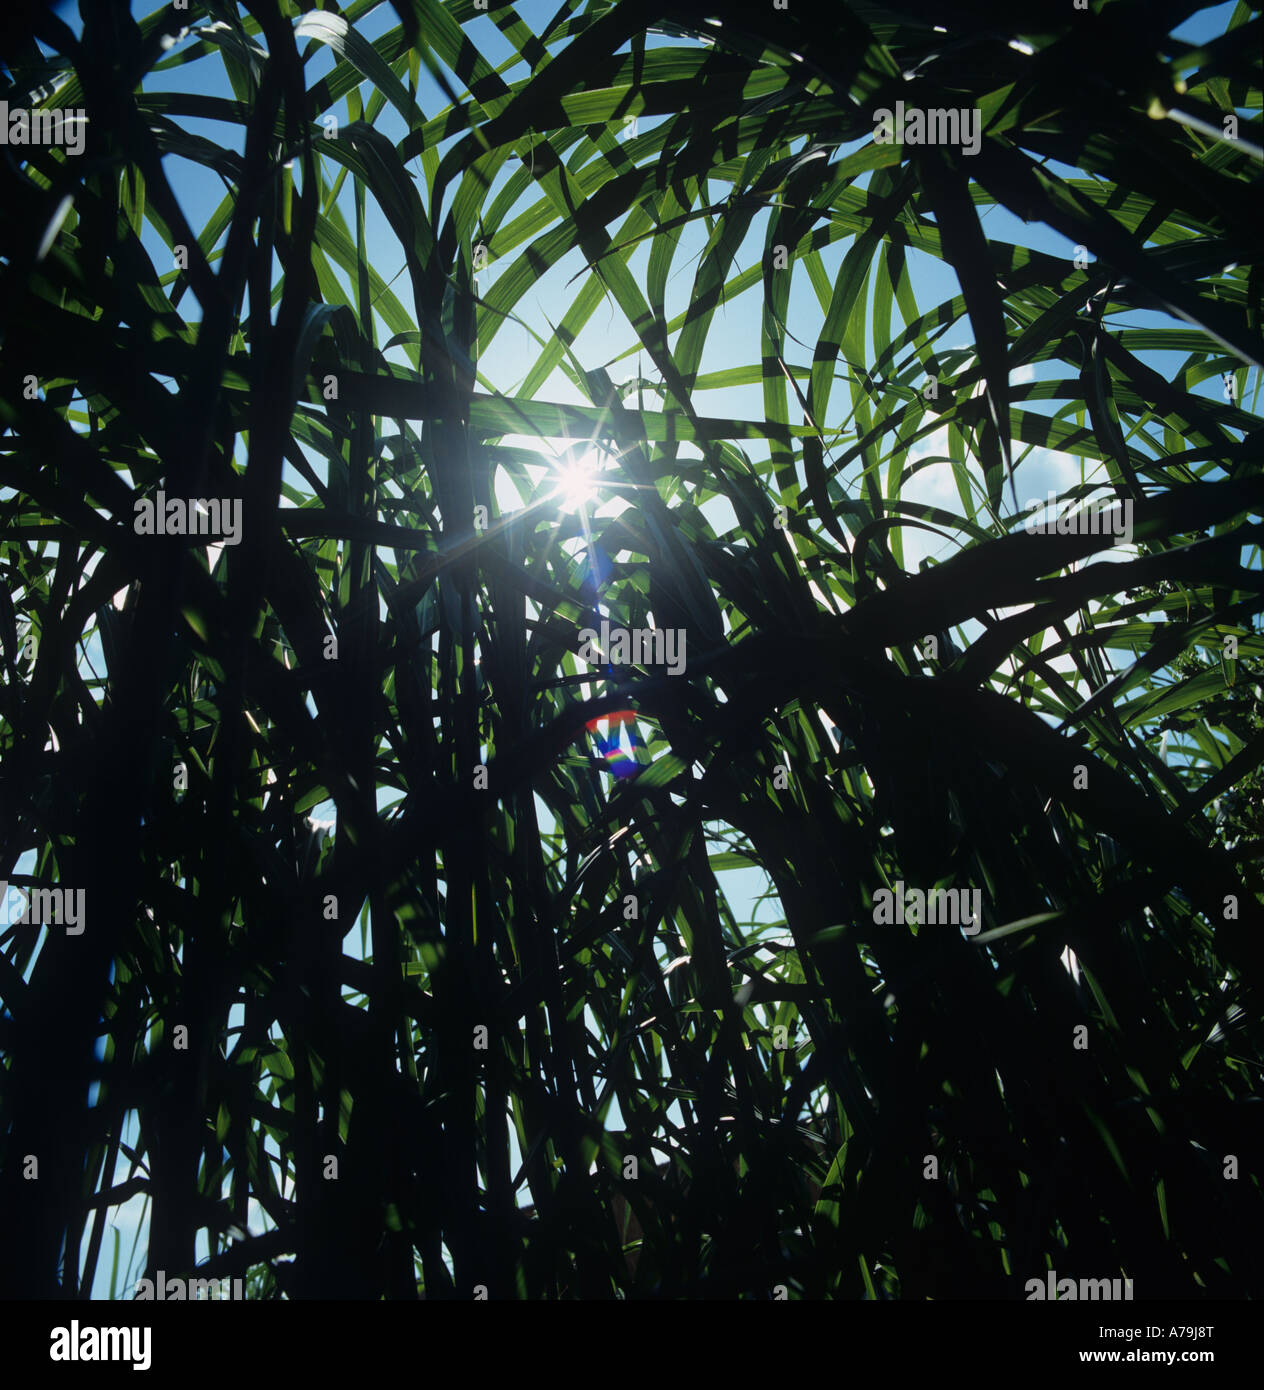 Maturing crop of elephant grass Miscanthus sp fast growing crop used for biomass - Stock Image